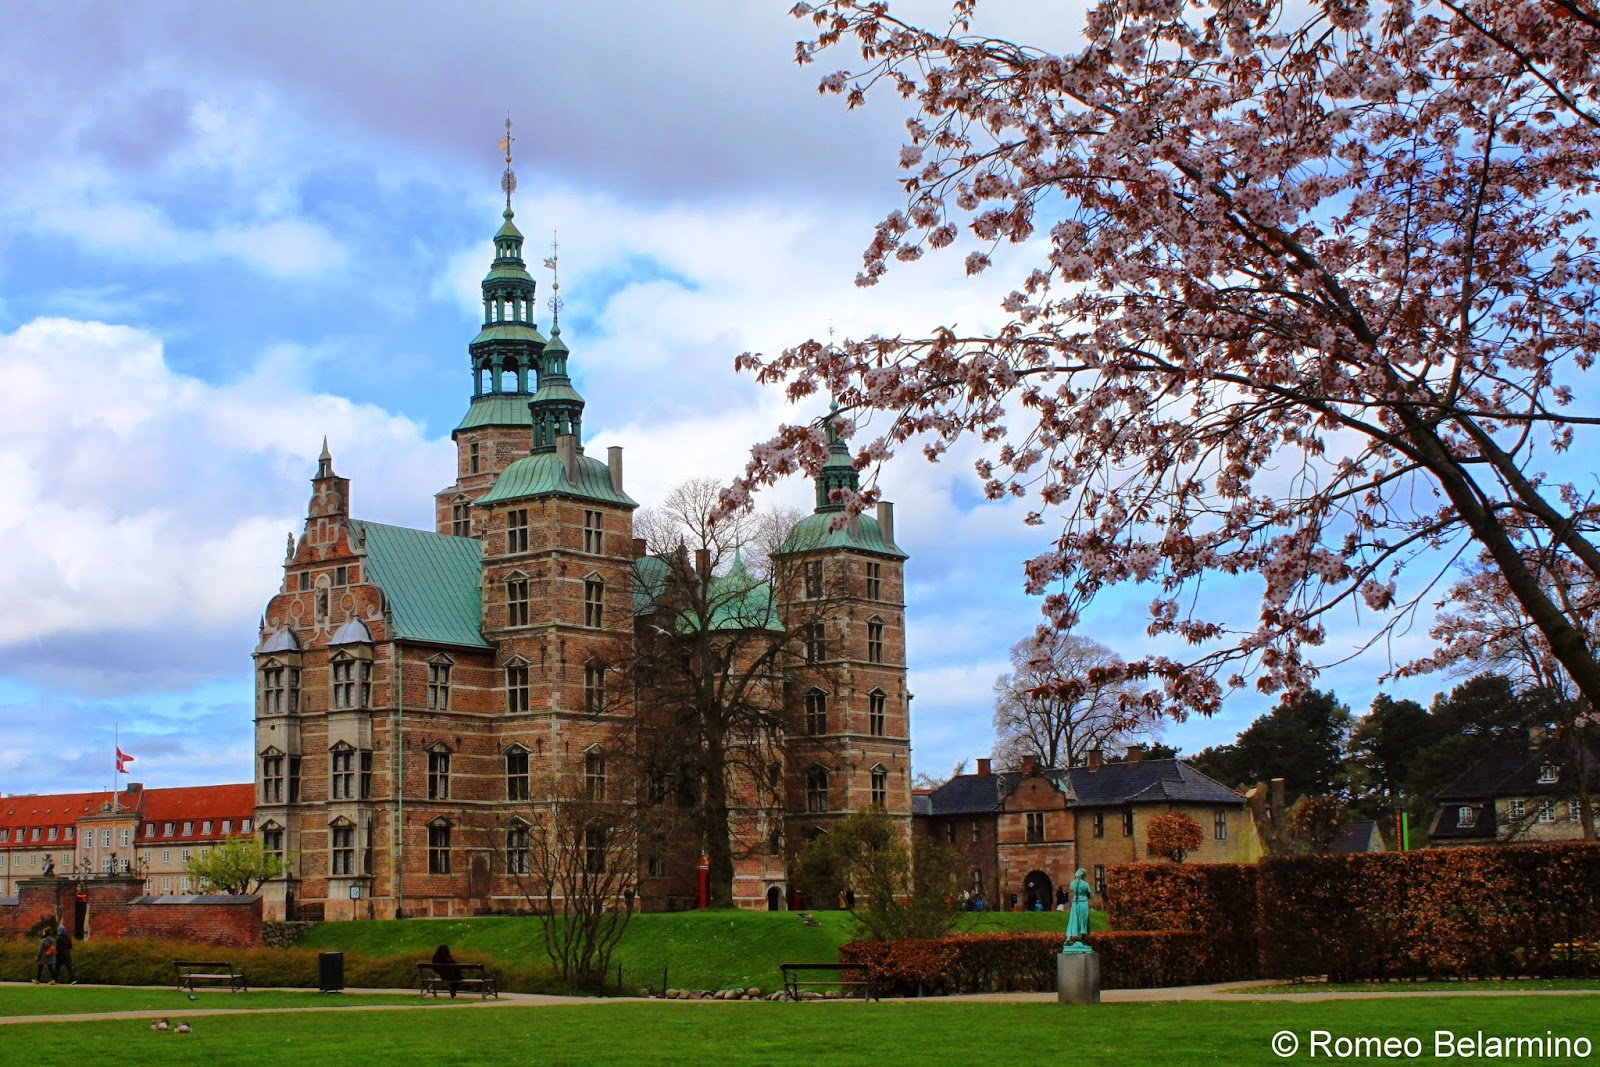 Leave A Slot In Your Schedule For Copenhagen Palaces And